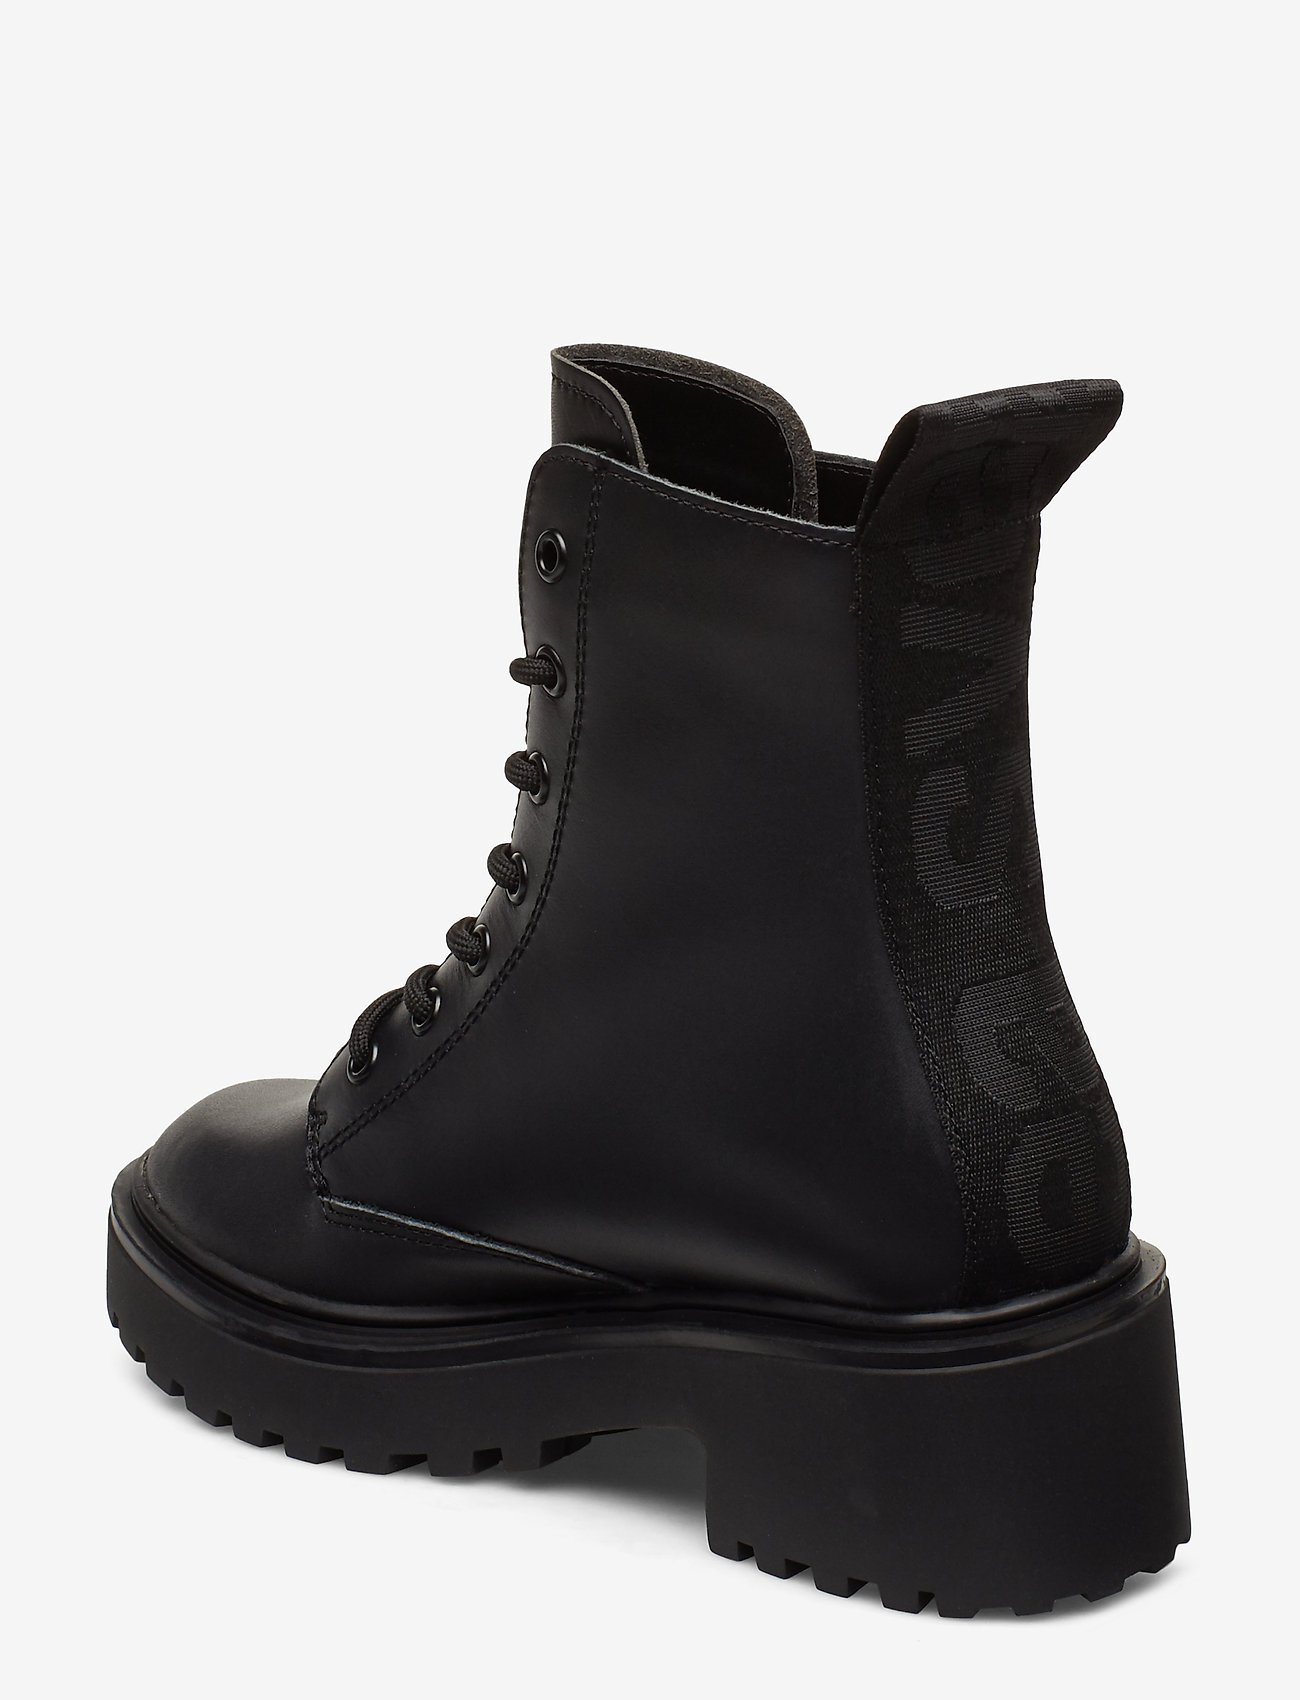 Leather Boot (Black) (176 €) - Svea qGWcl